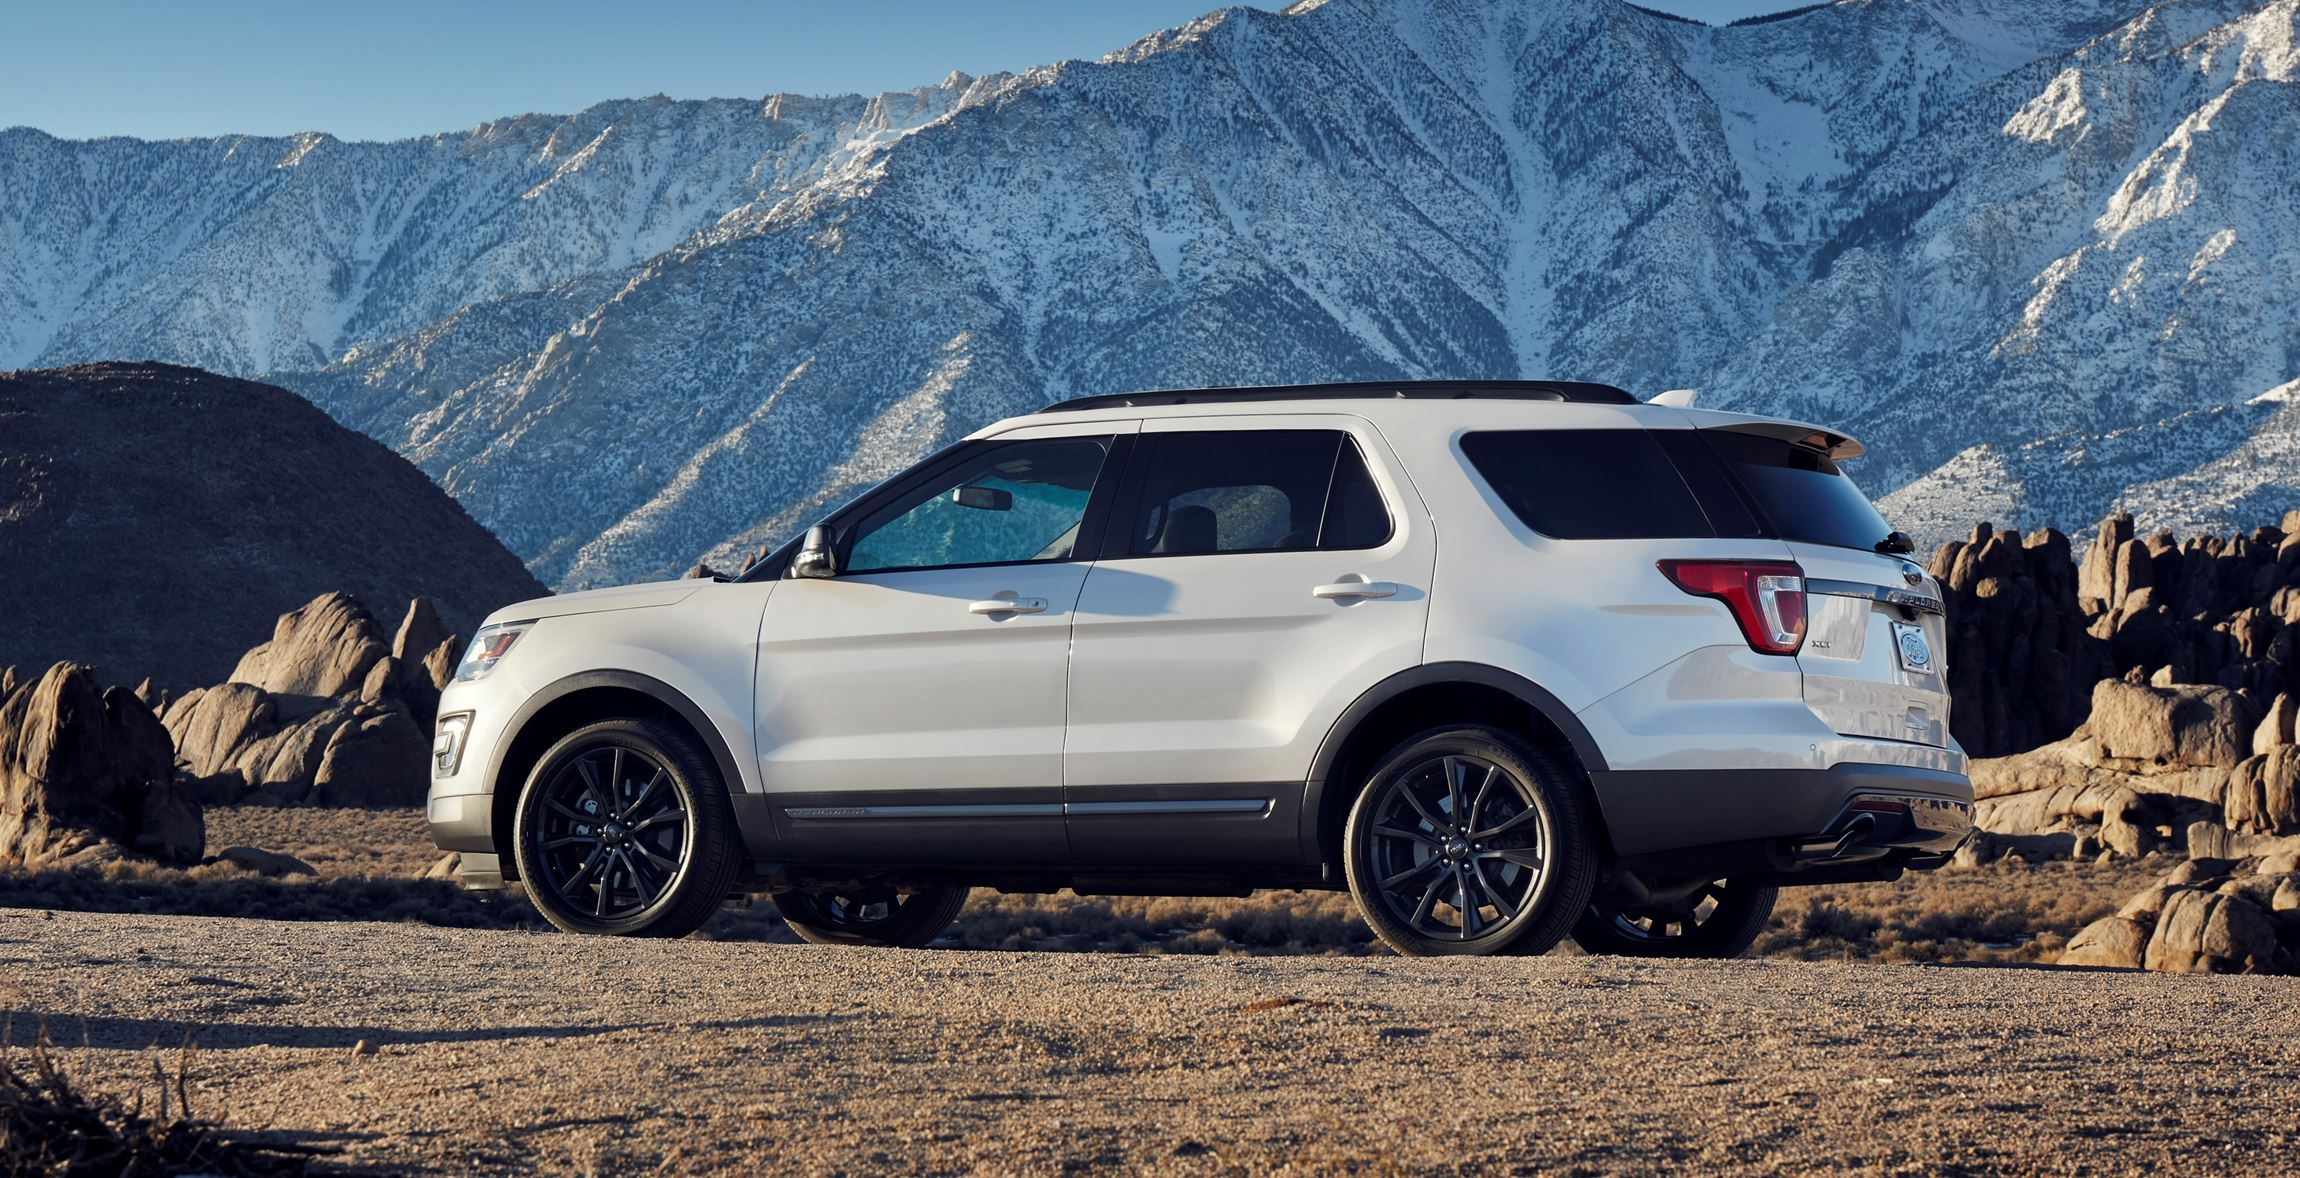 2017 ford explorer xlt sport pack is high impact styling upgrade the front end of the 2017 ford explorer publicscrutiny Images